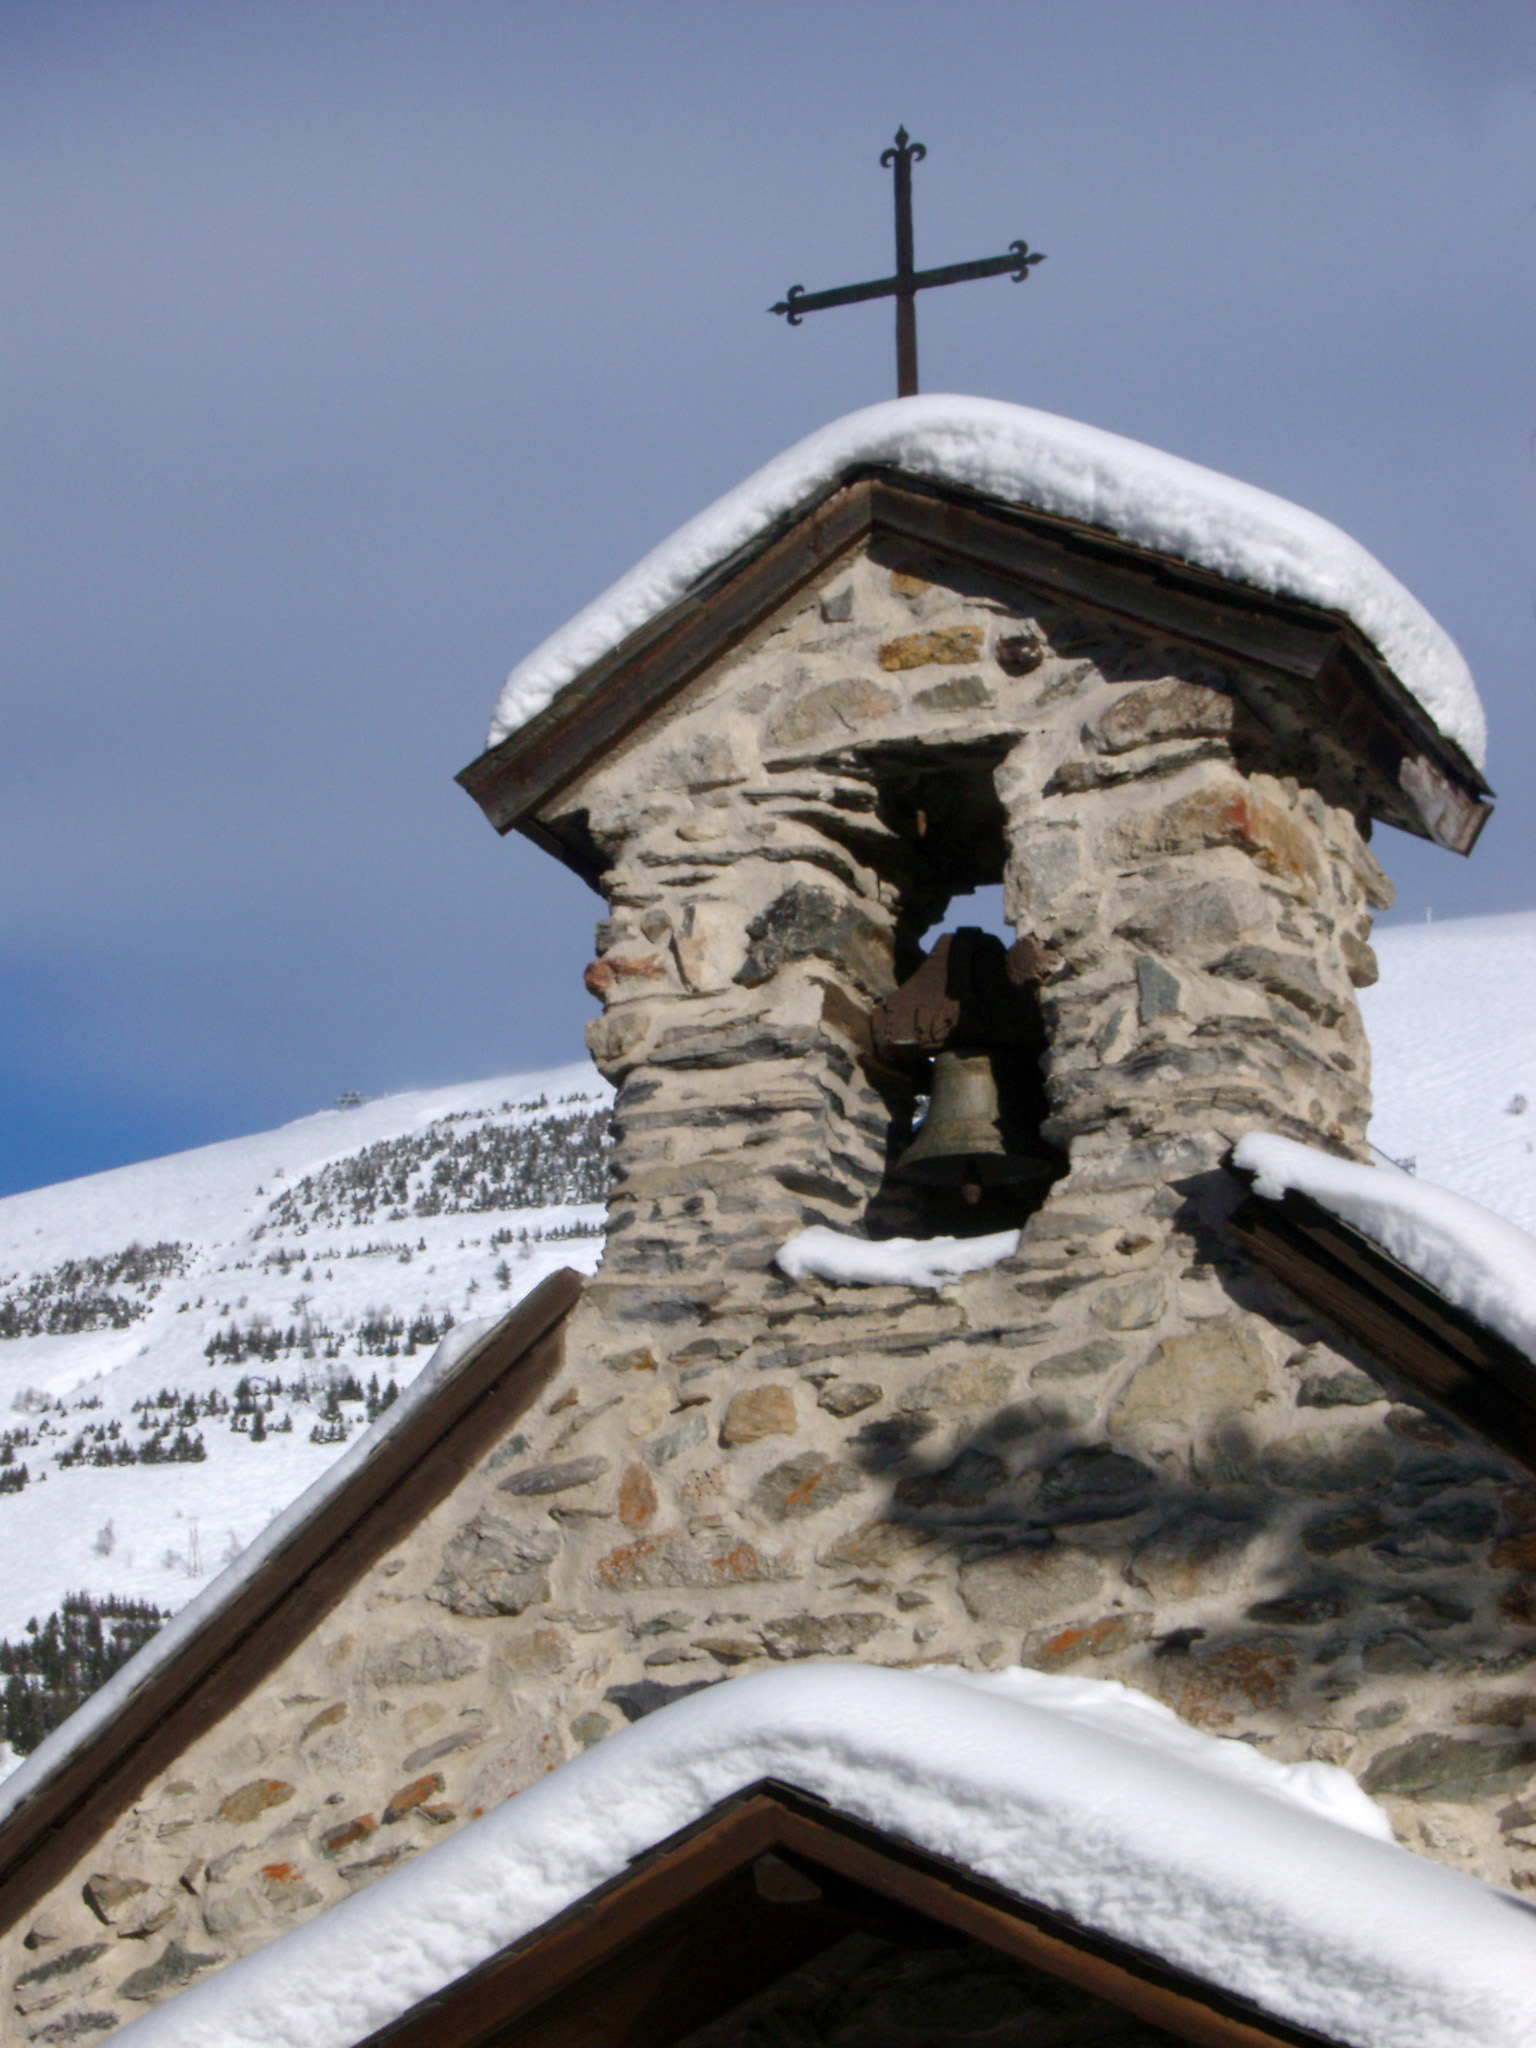 Historic Alpine Church, Covered with Snow, with Vintage Bells and Cross